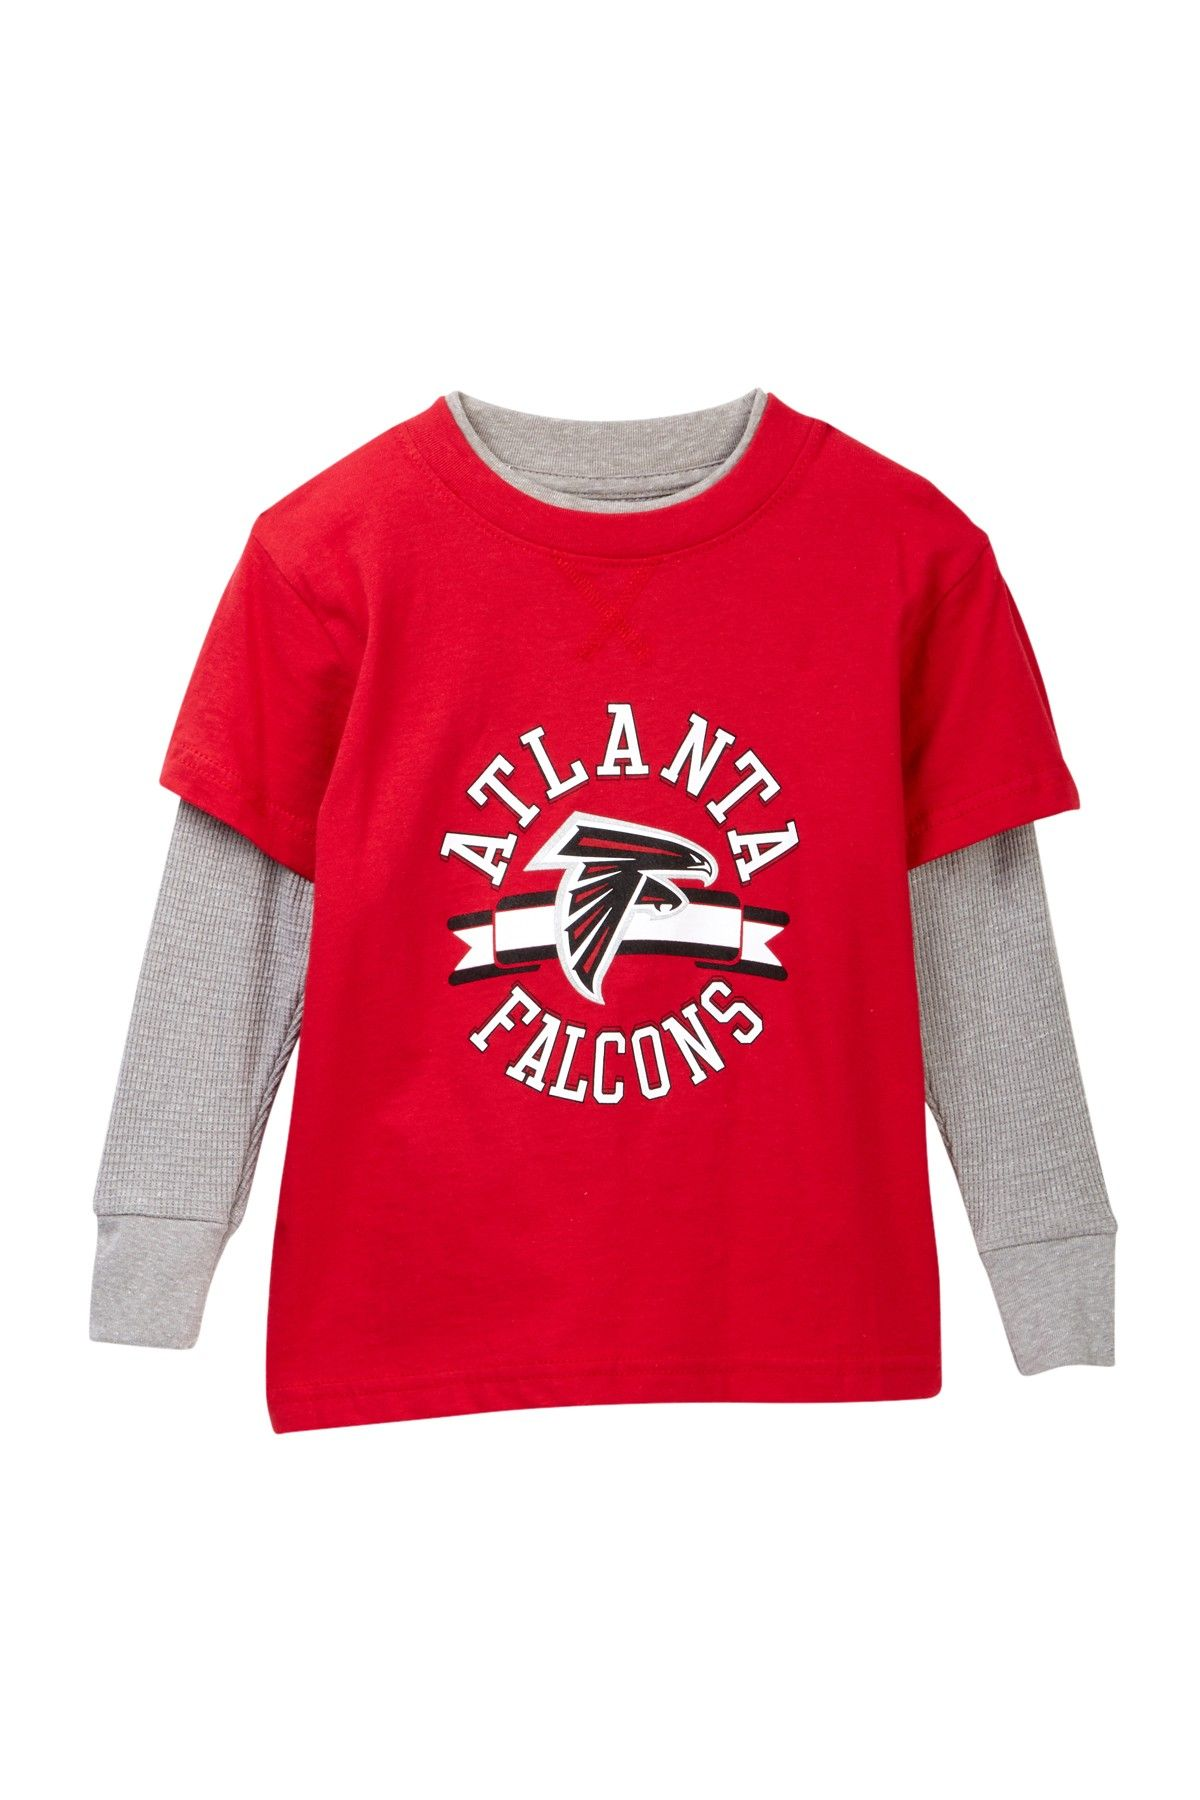 Atlanta Falcons Long Sleeve Tee Toddler Boys